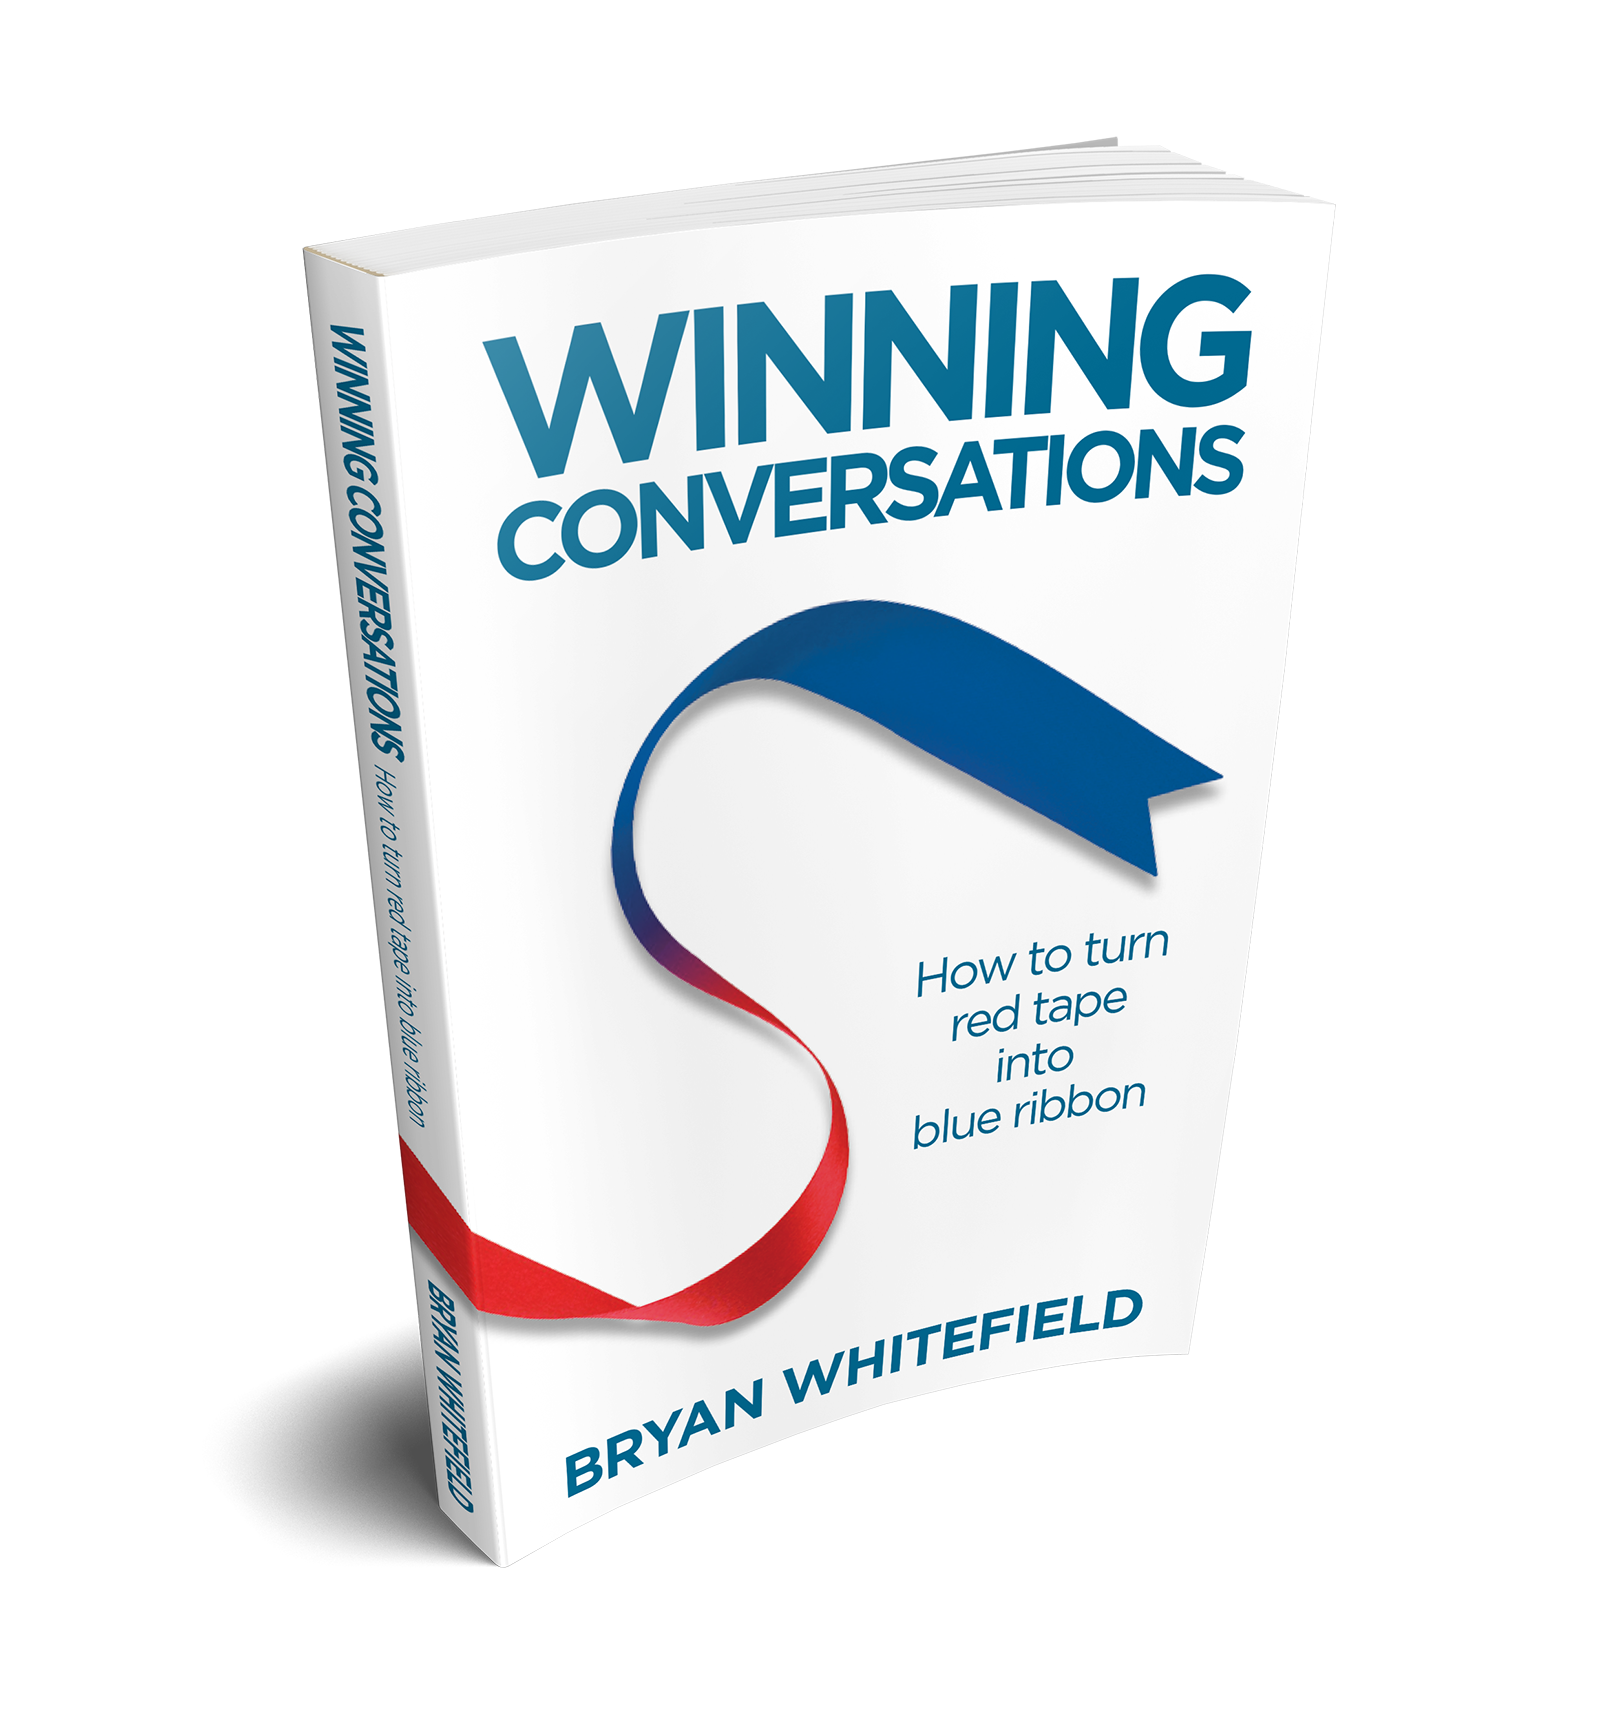 Winning Conversations: How to turn red tape into blue ribbon